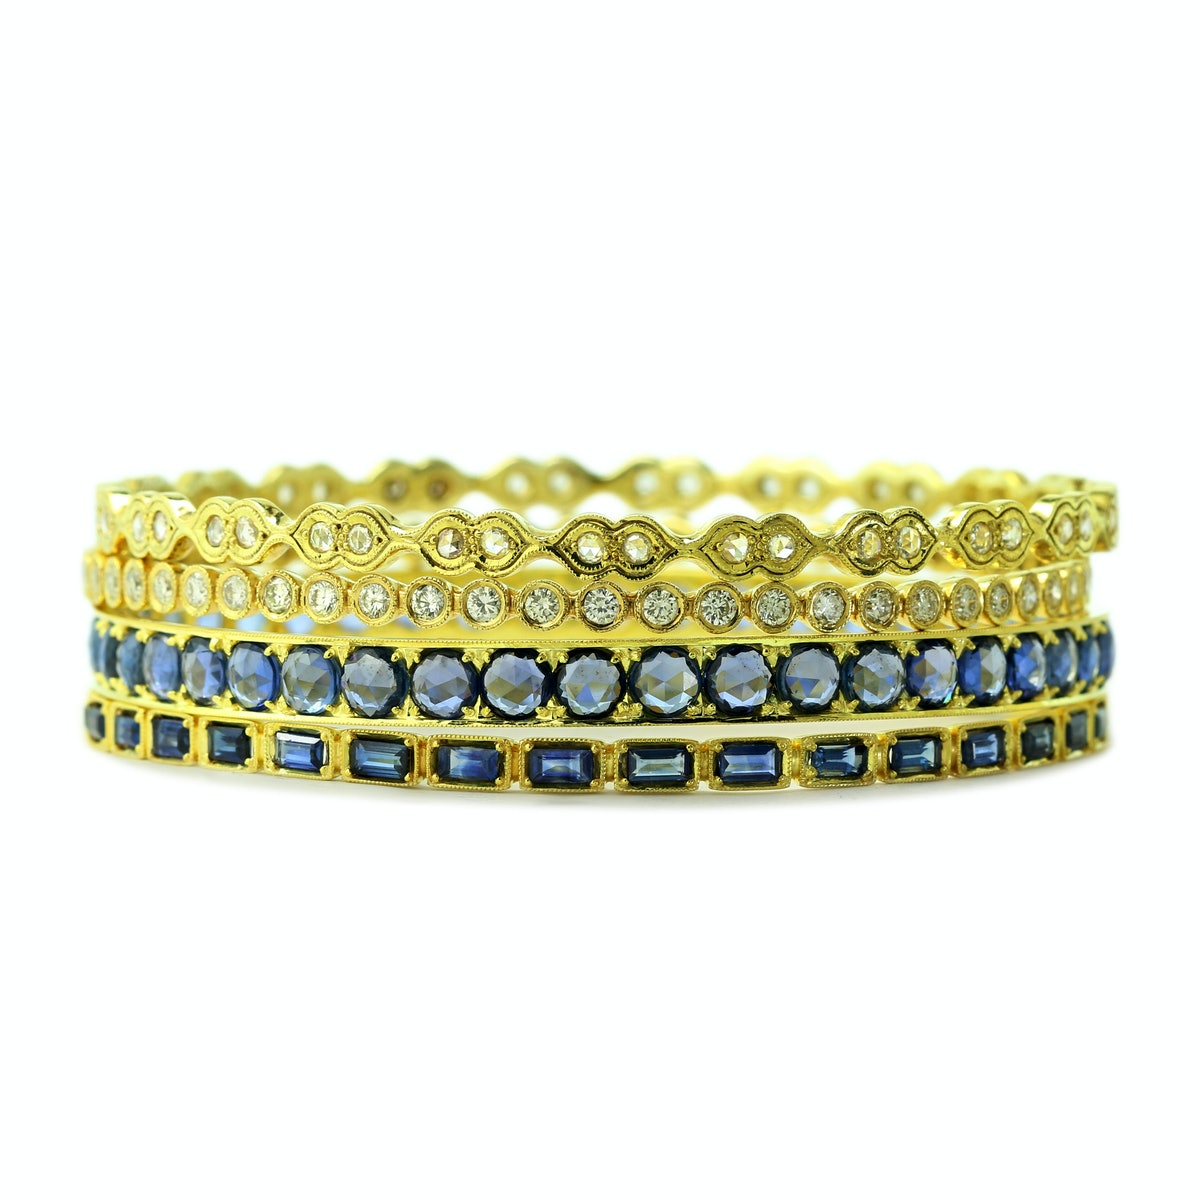 Ila collection 14k recycled yellow gold, diamond and blue sapphire bangles